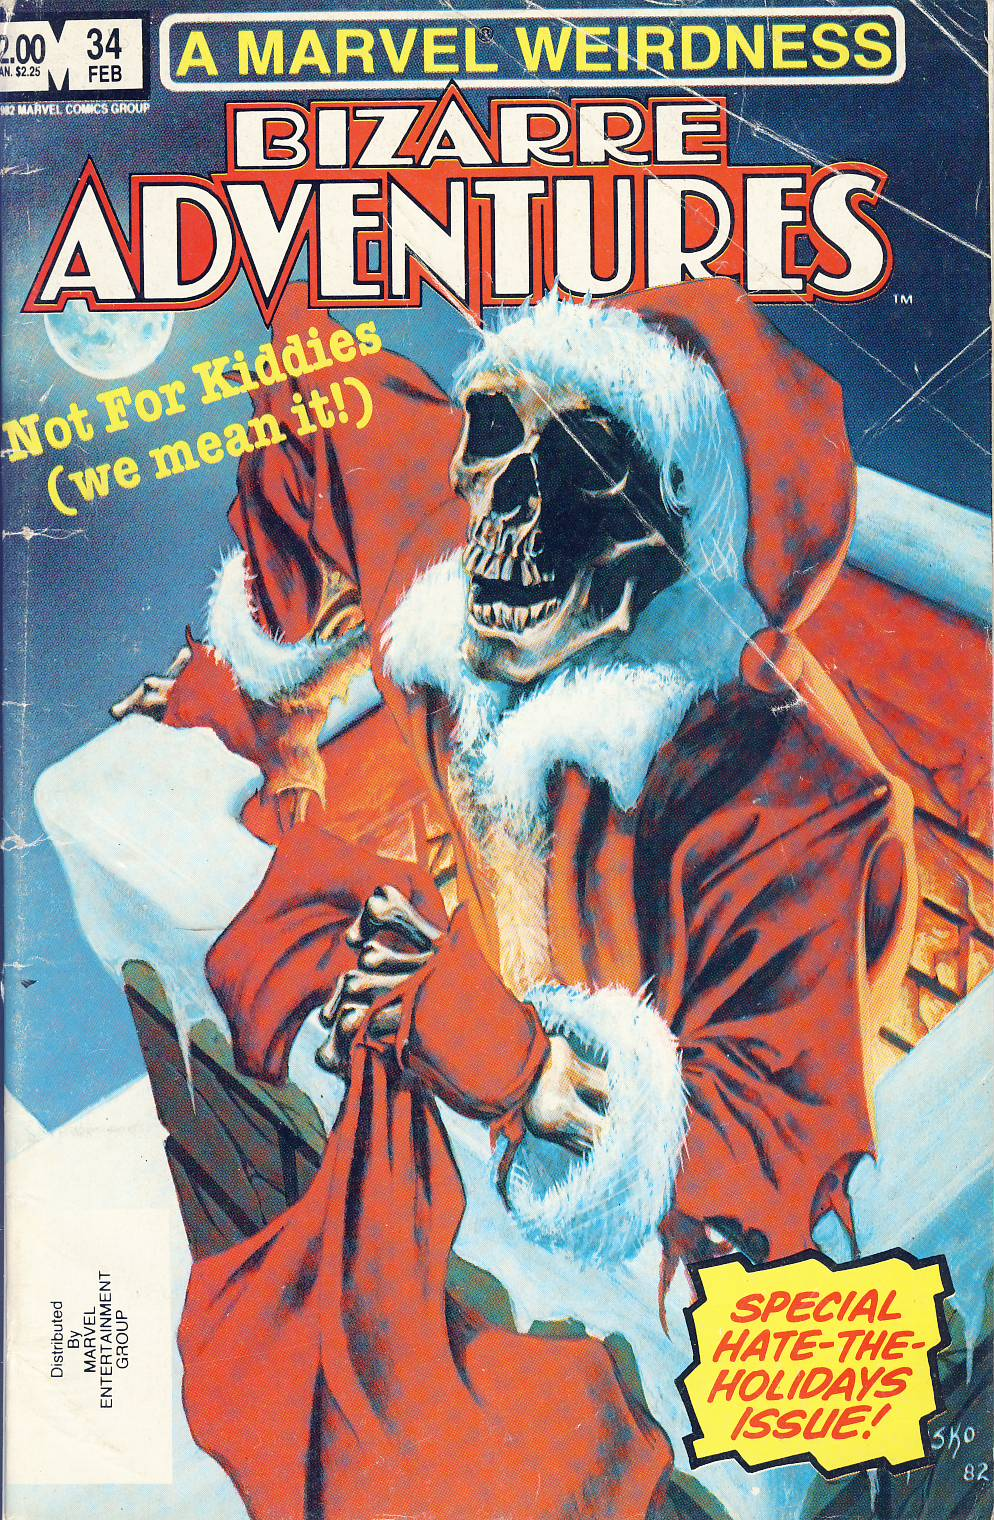 BIZARRE ADVENTURES Vol.1 #34 1983 A Marvel Weirdness ref101757 Not for Kiddies - a pre-owned item in read condition.